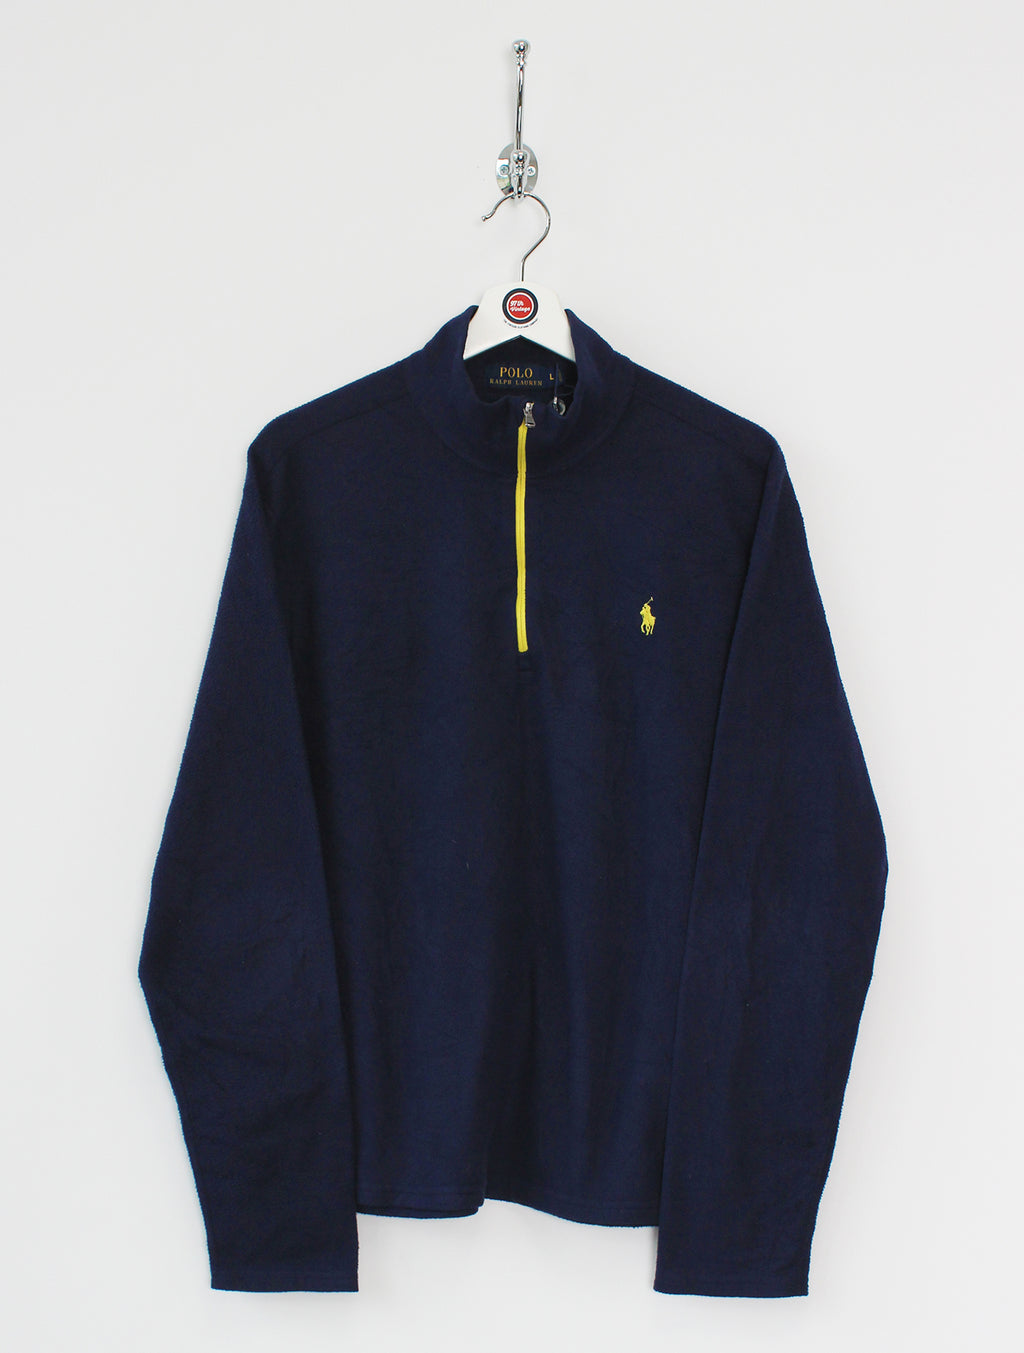 Ralph Lauren Fleece (M)